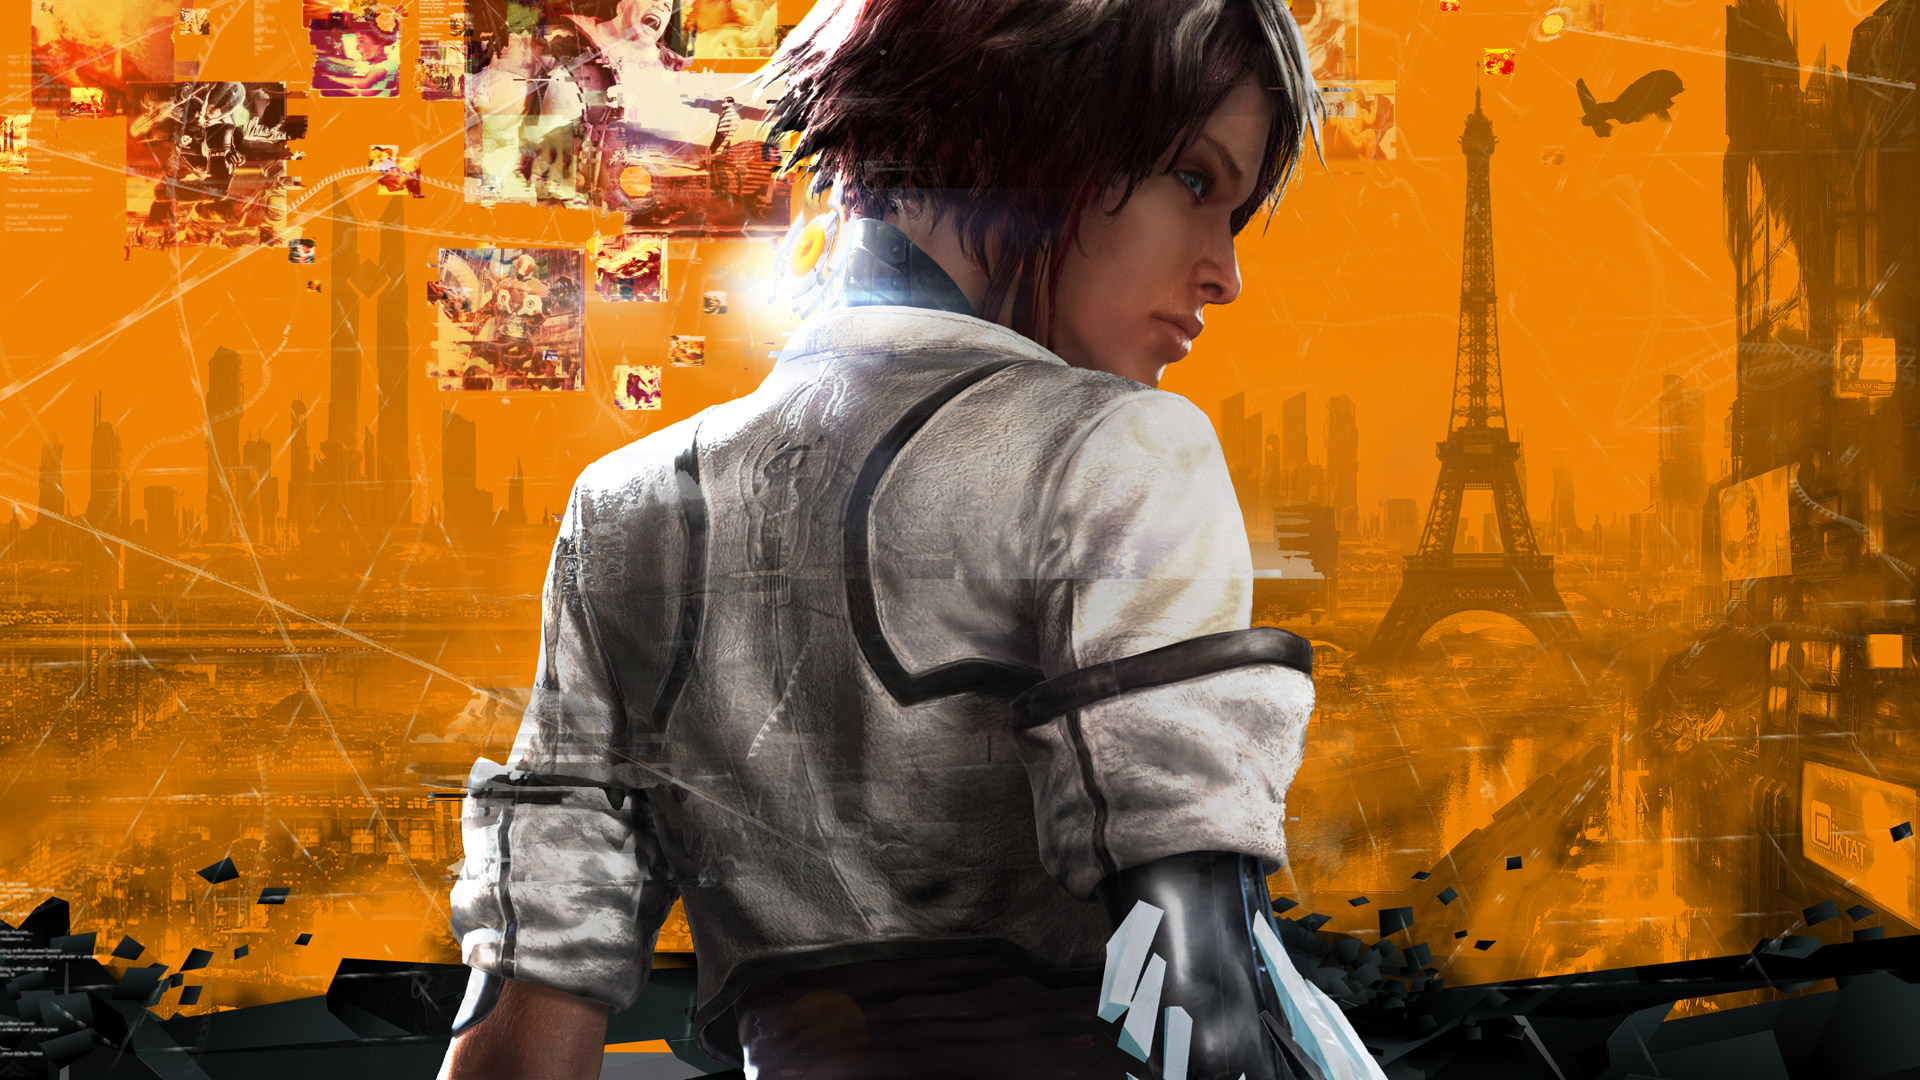 Why We Need to Tell Publishers We Want More Female Protagonists